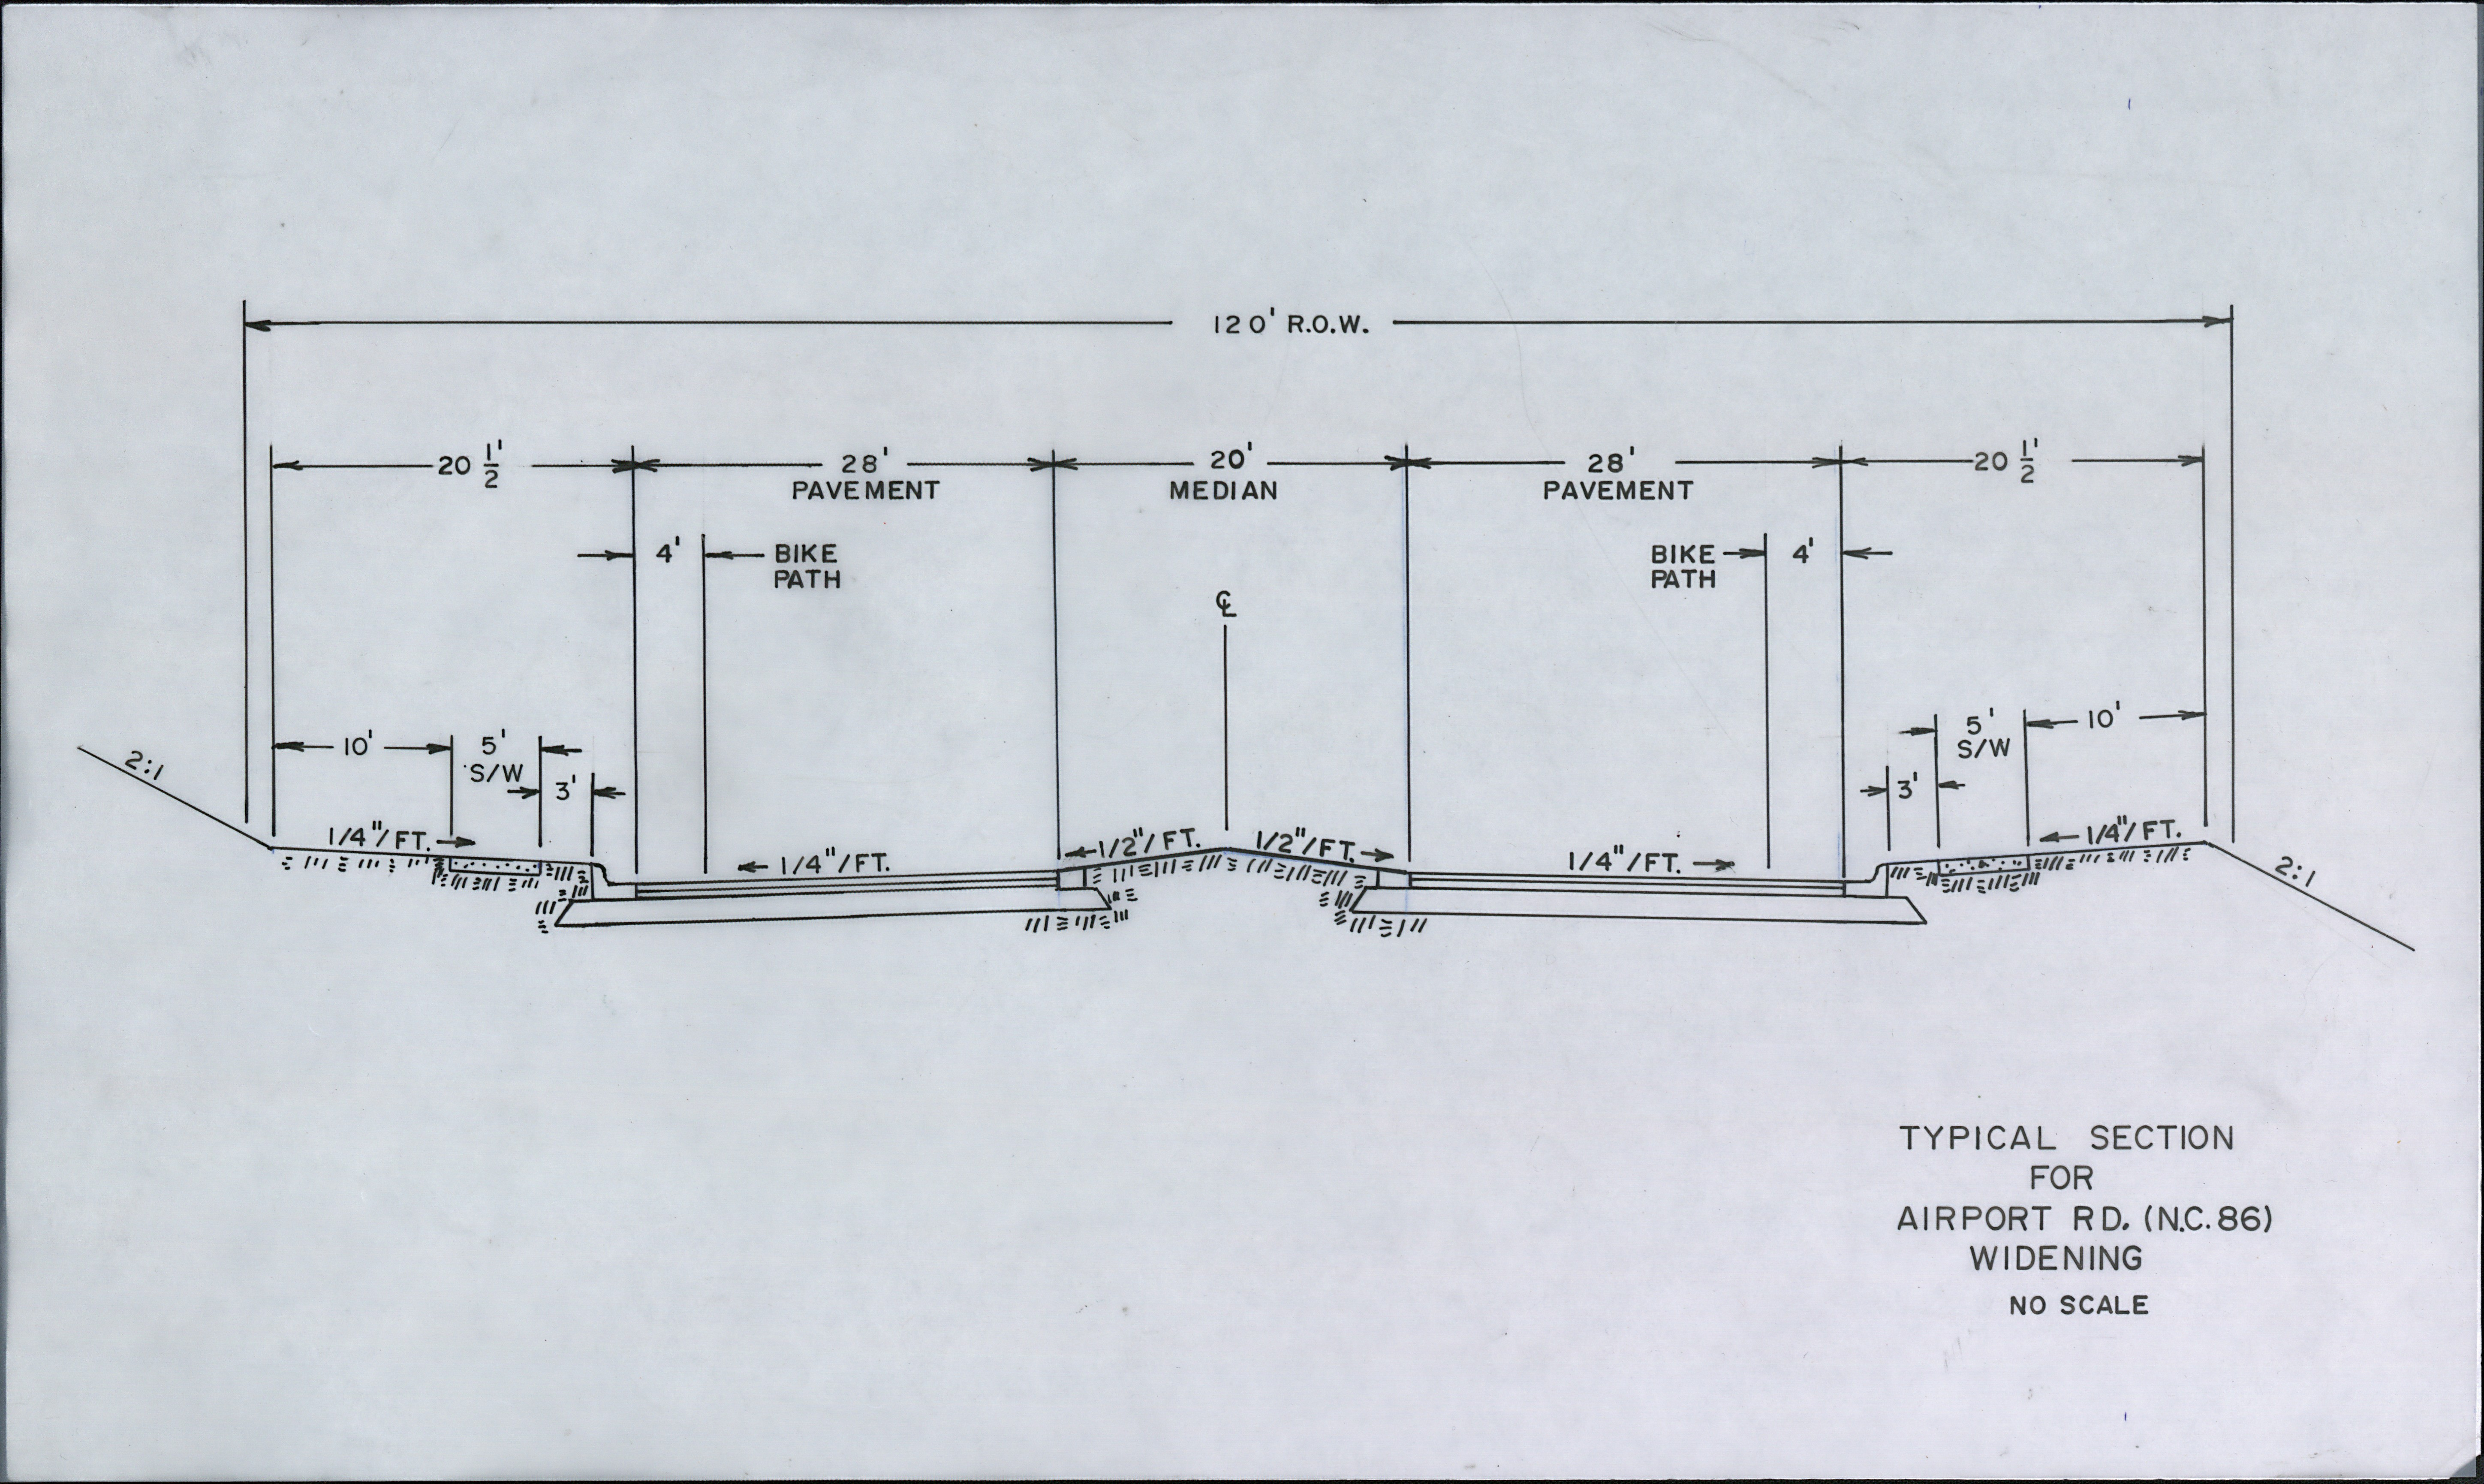 Plans for widening Airport Road (NC86)